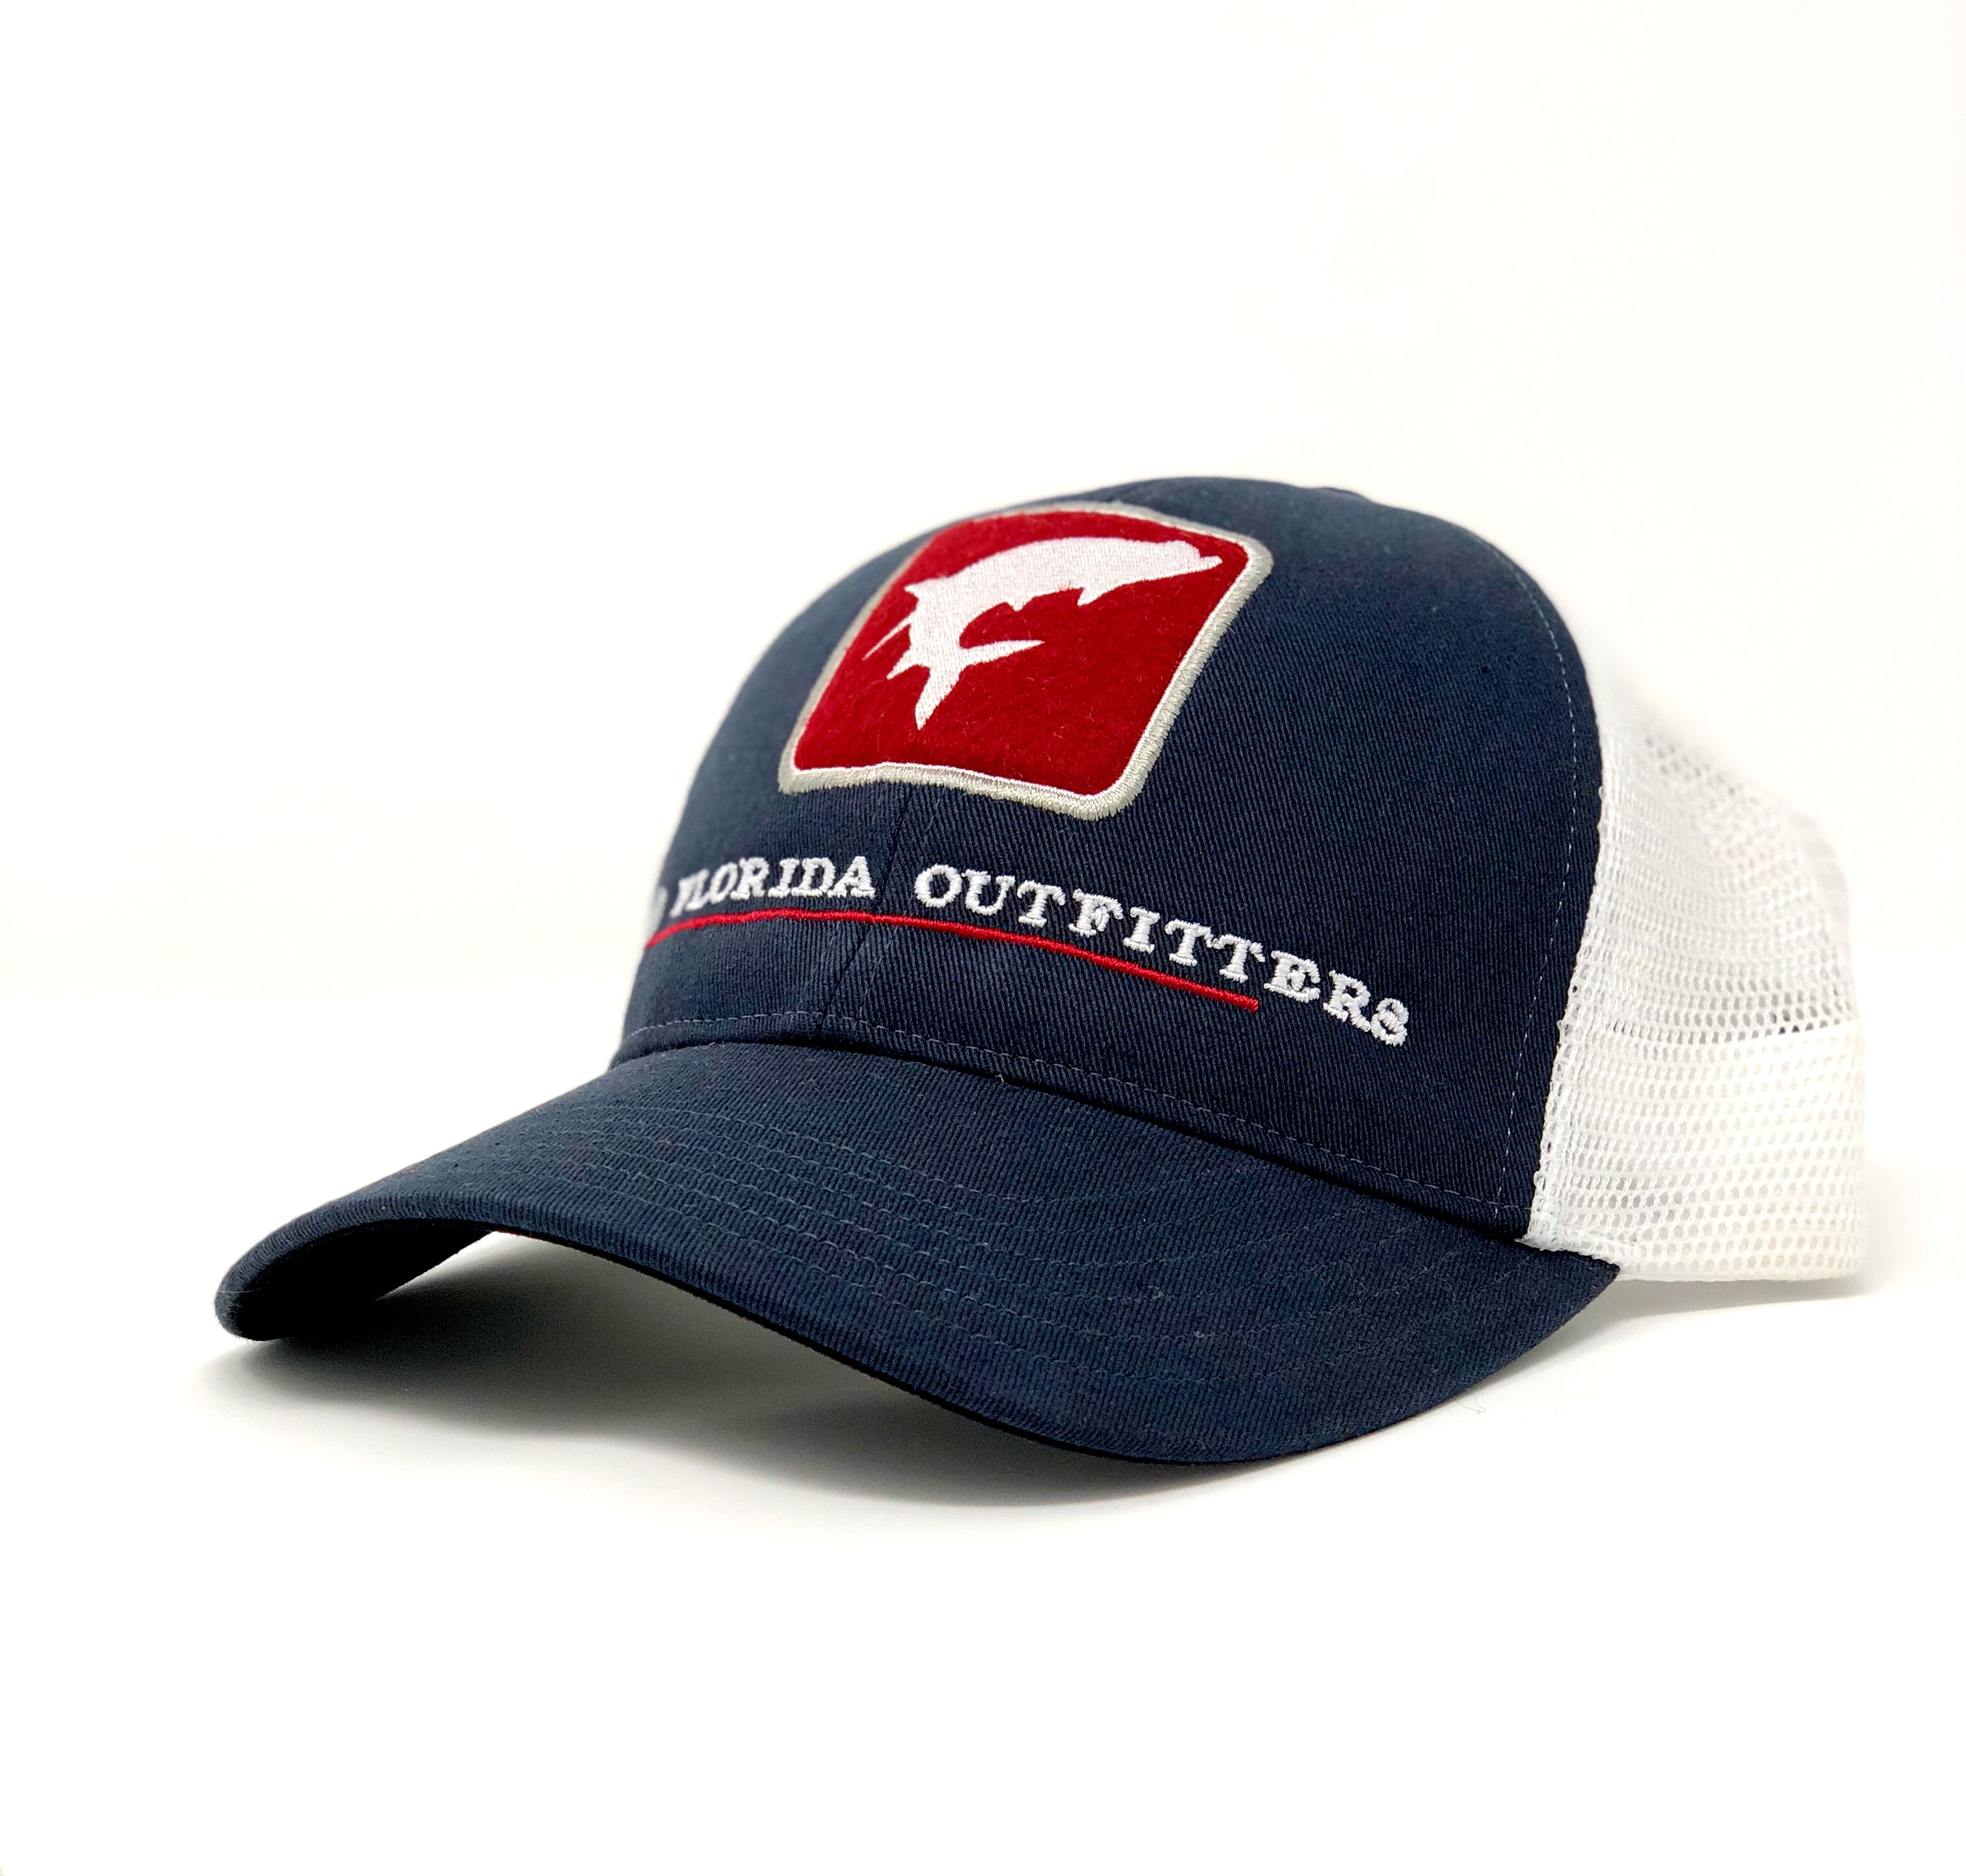 Simms OFO Tarpon Trucker in Navy Blue - Old Florida Outfitters 921c6d4fc6e